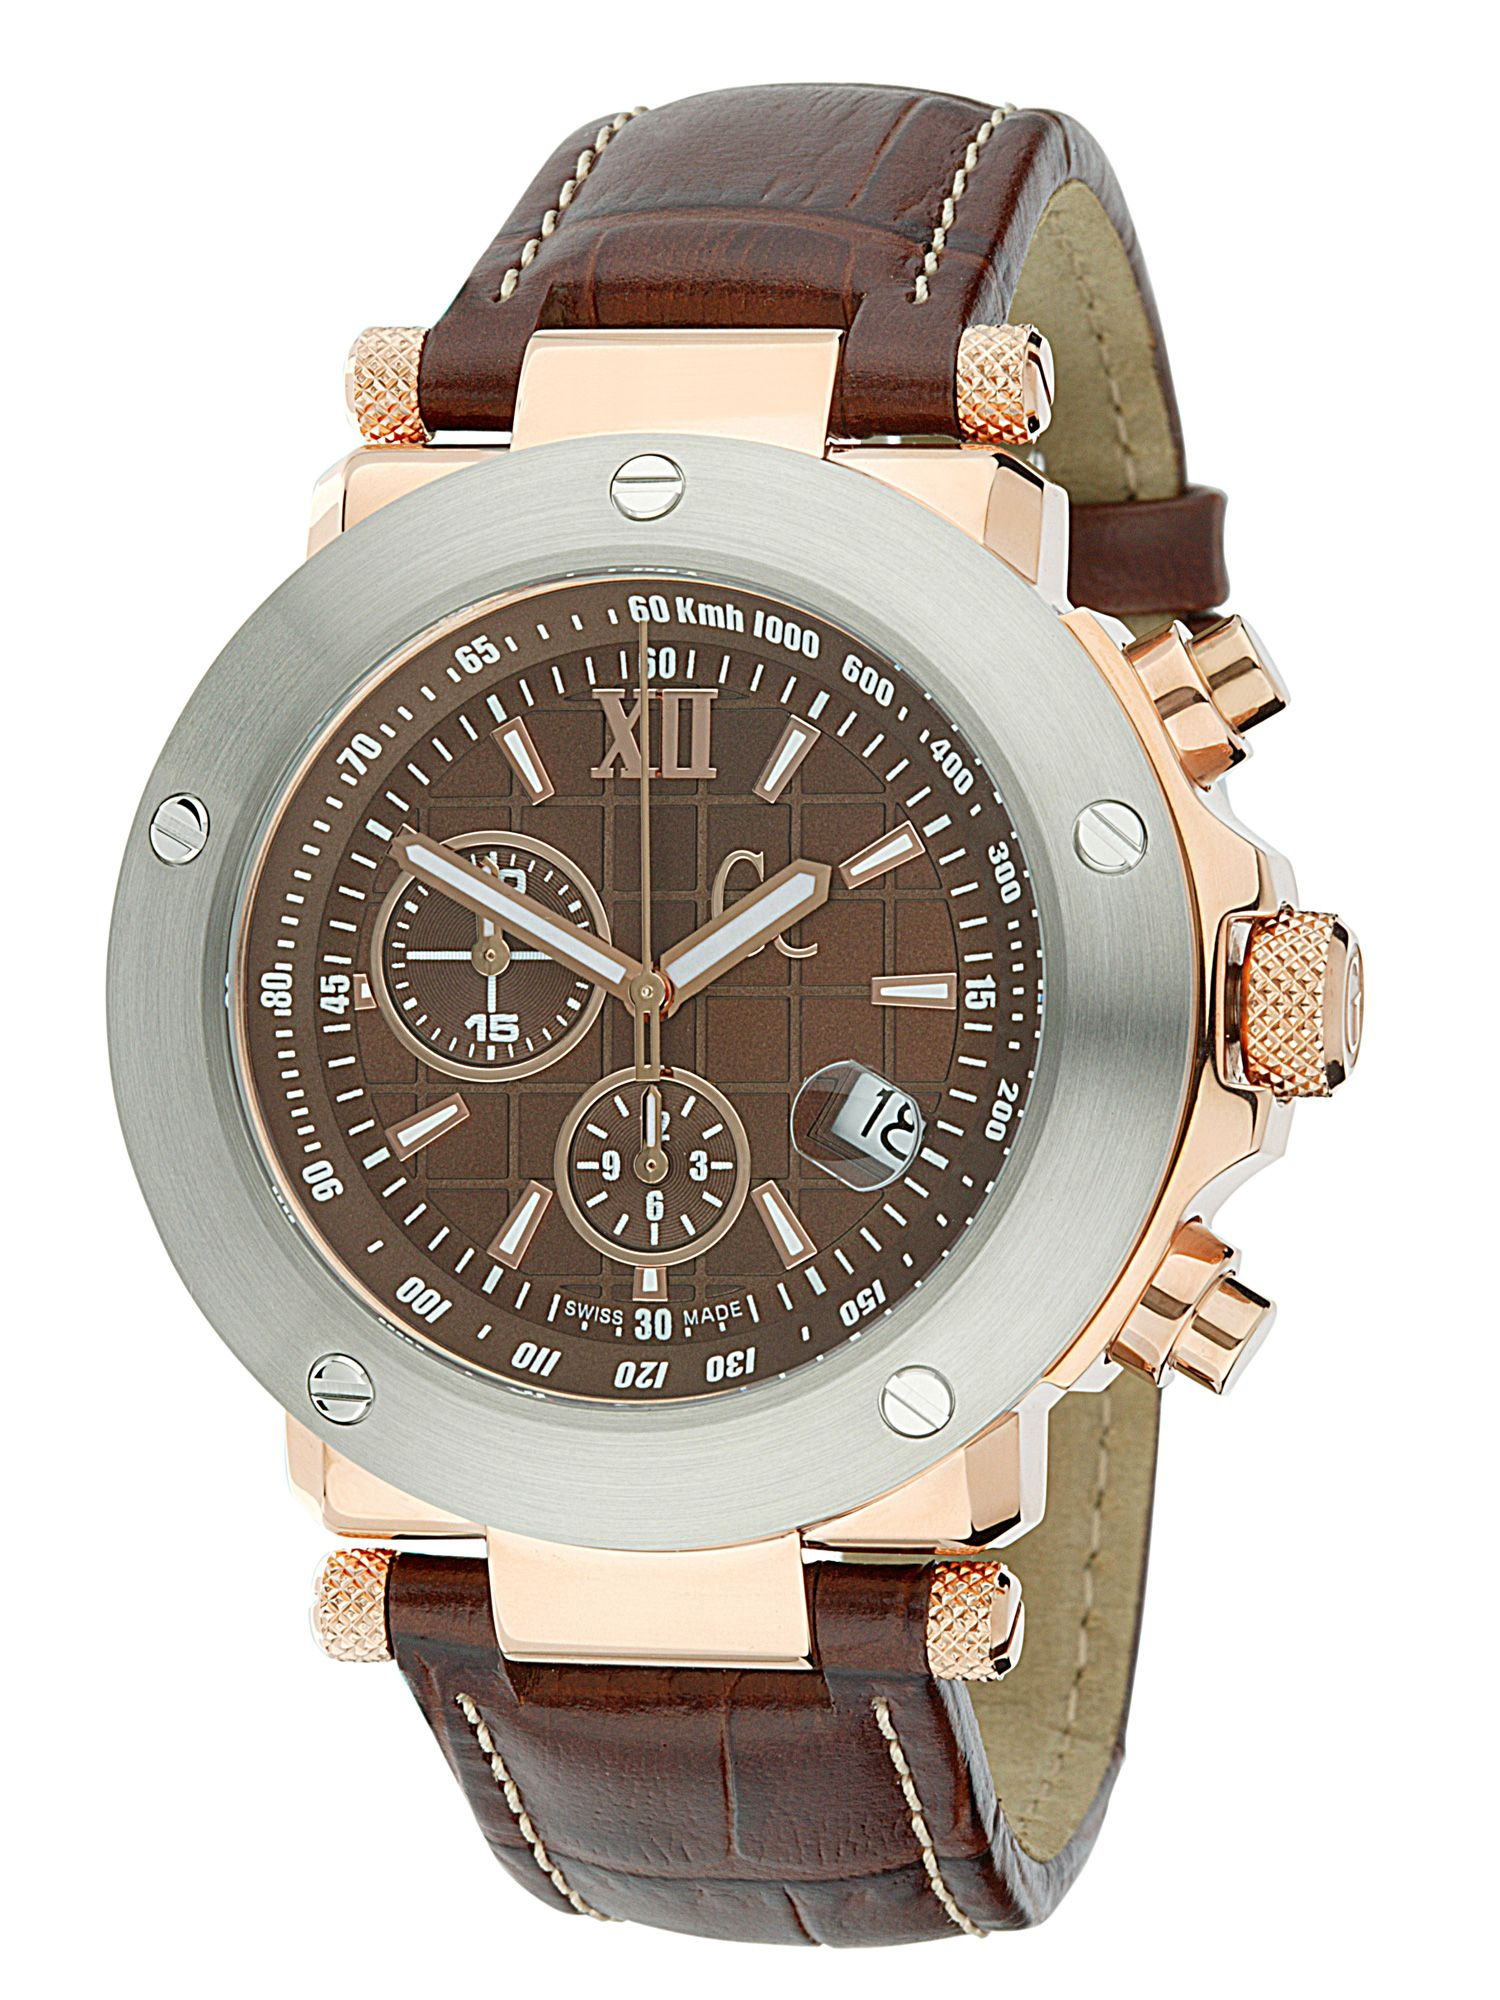 Gc Leather strap chronograph watch product image